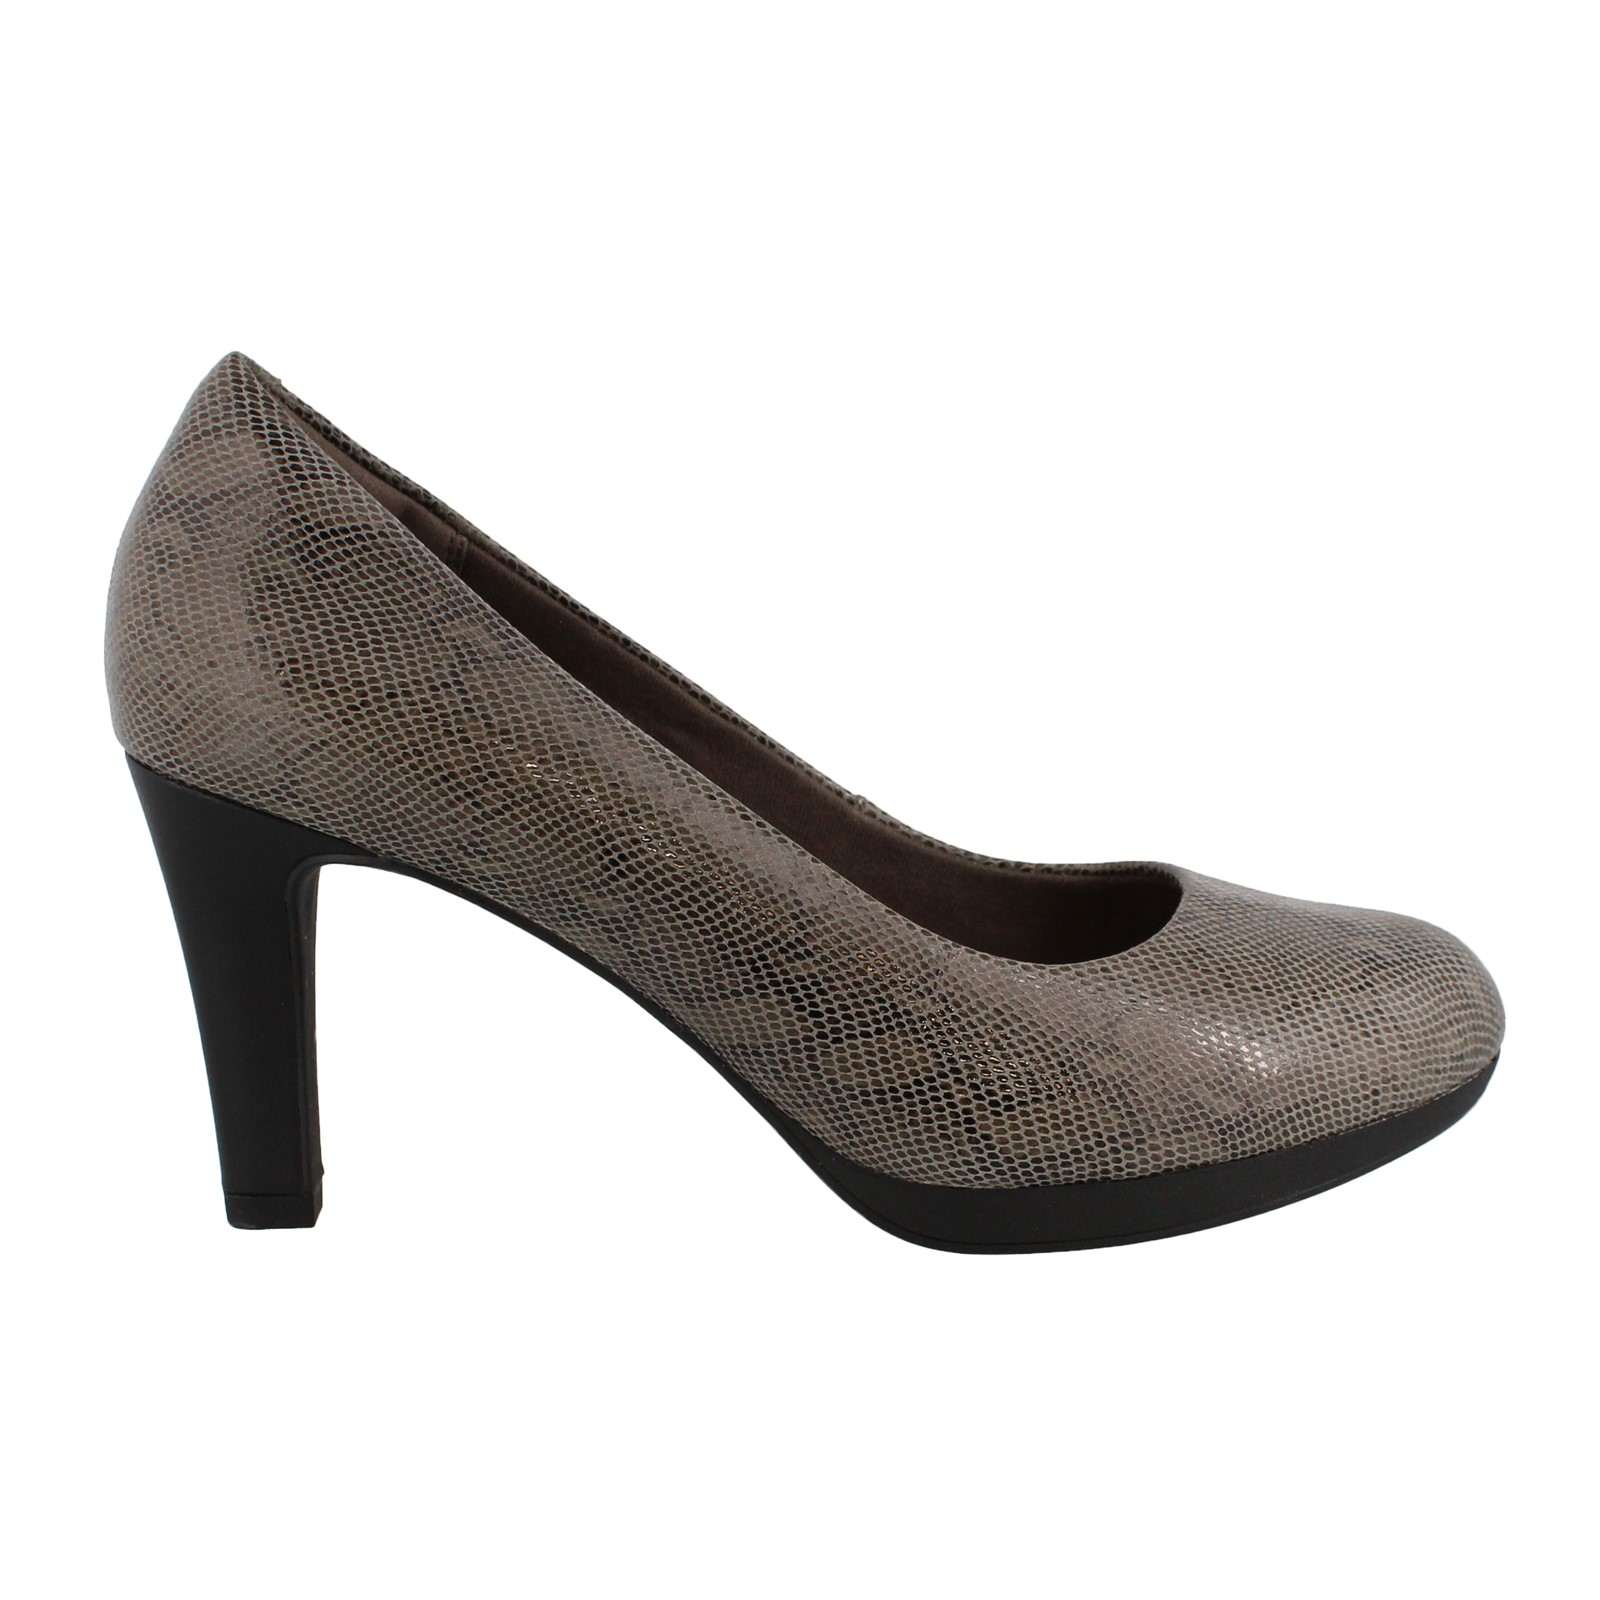 Women's Clarks, Adriel Viola High Heel Pumps